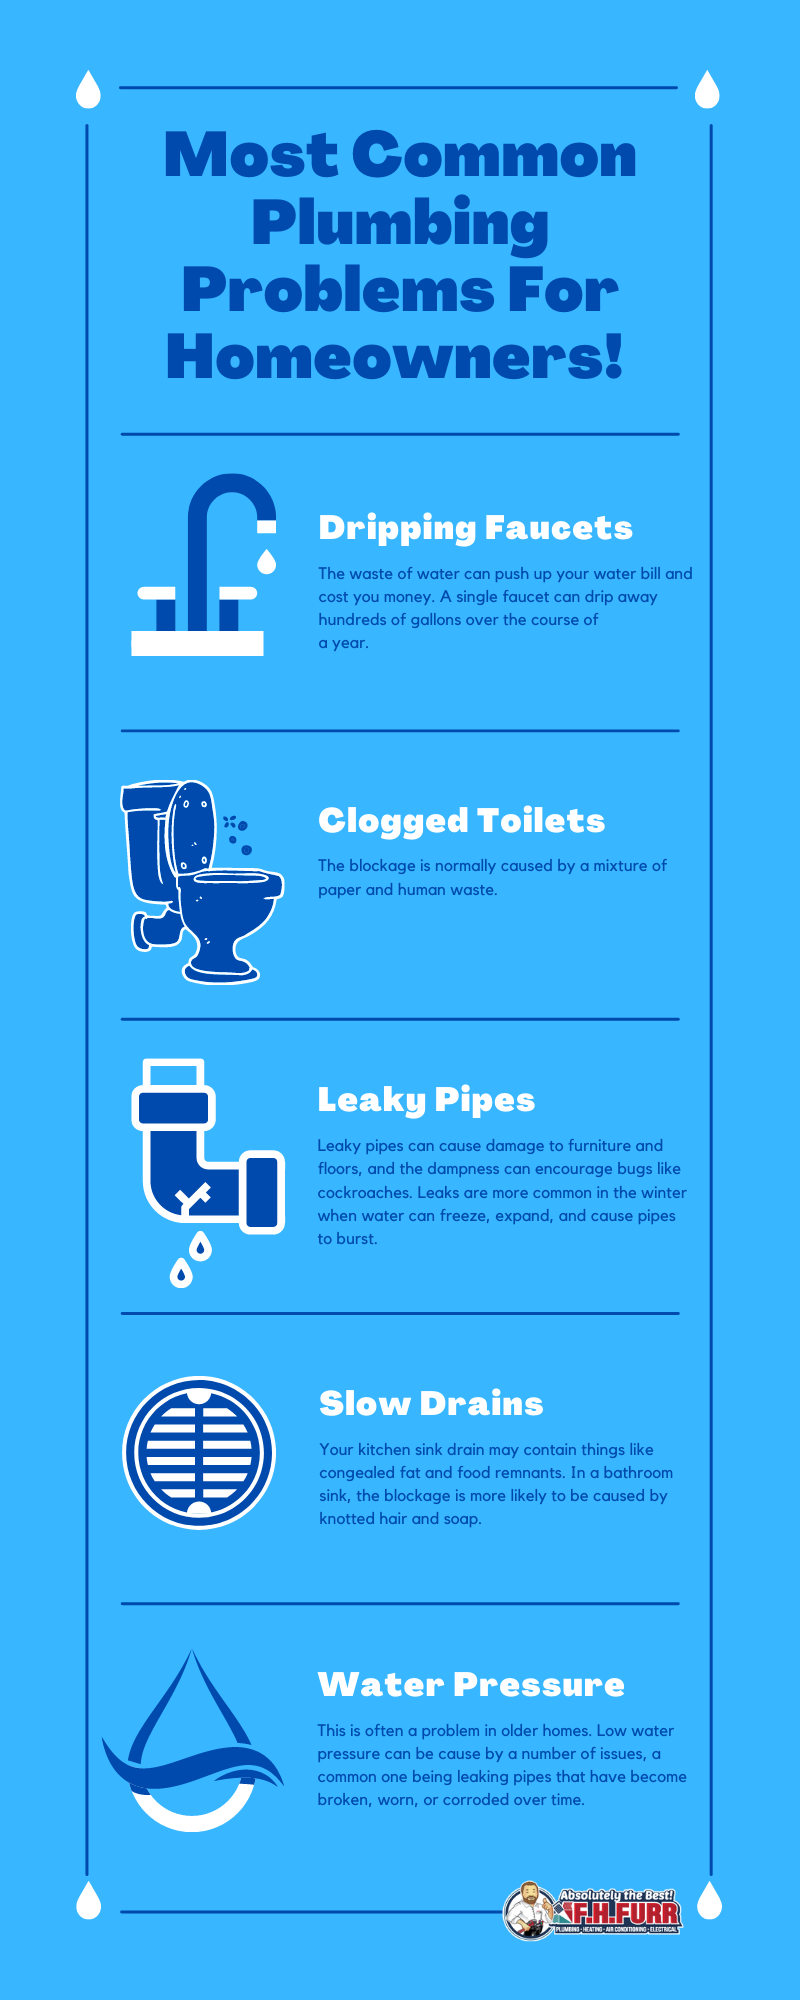 Most Common Plumbing Problems For Homeowners!